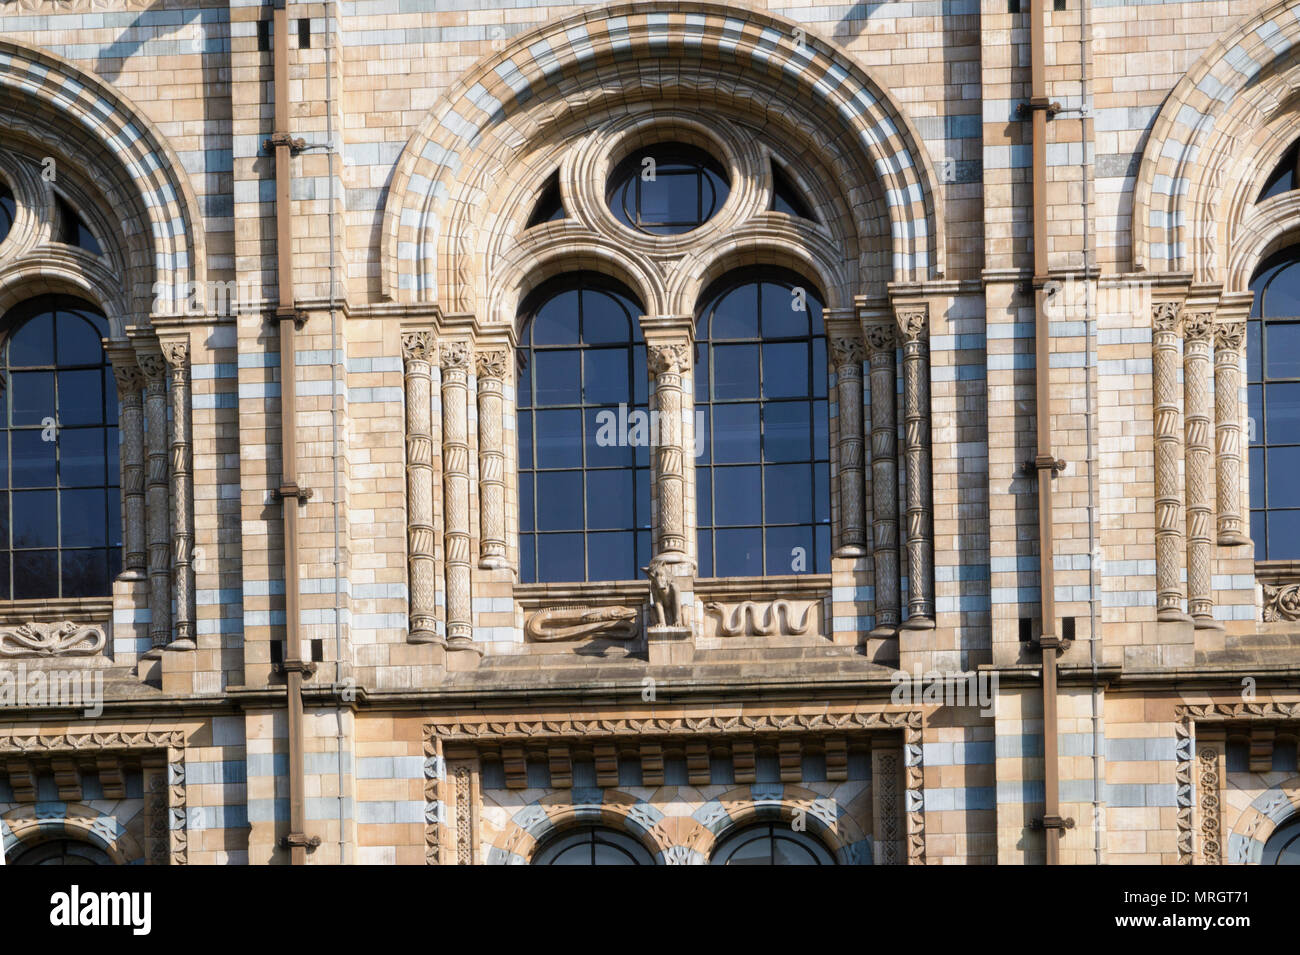 Natural History Museum London England - Stock Image